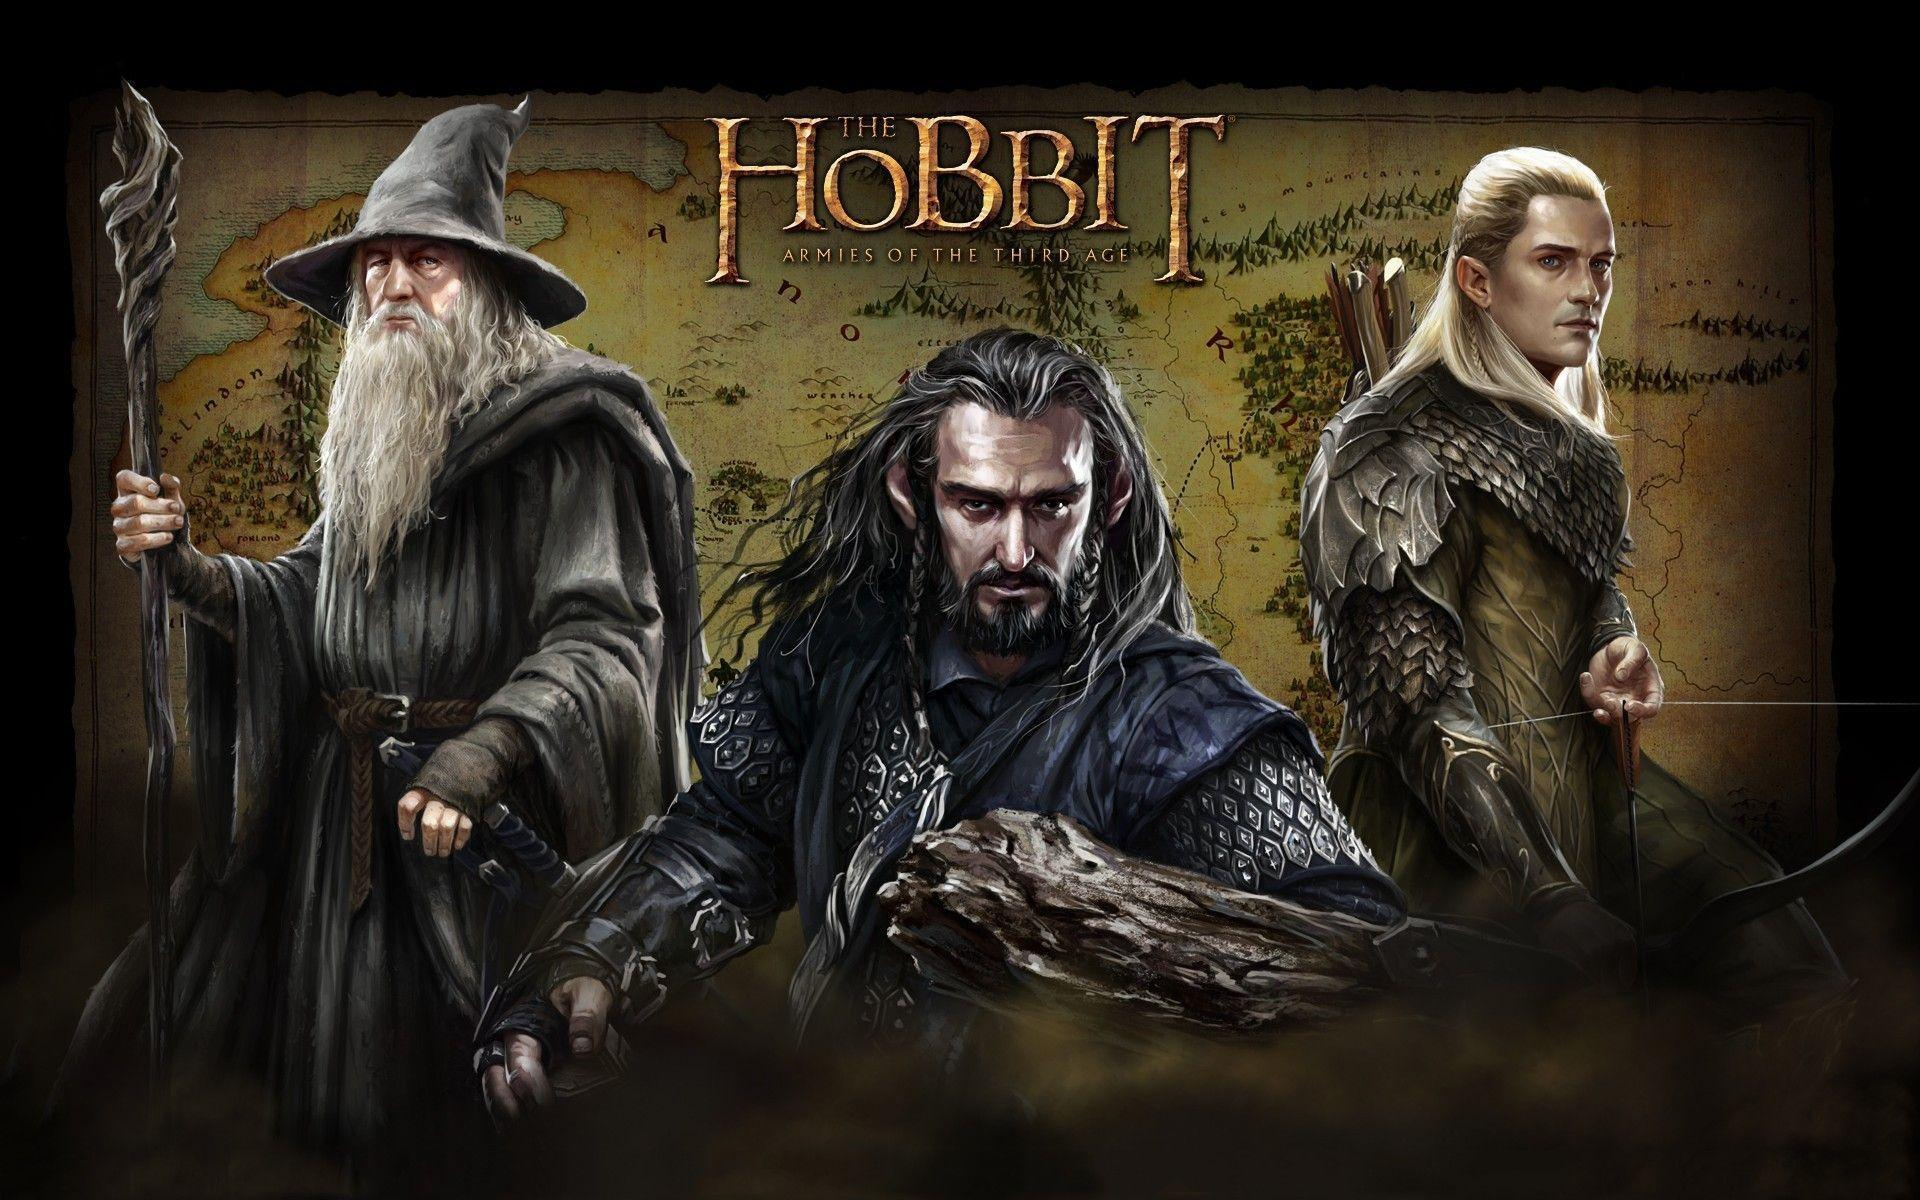 The Hobbit Wallpapers - Full HD wallpaper search - page 2